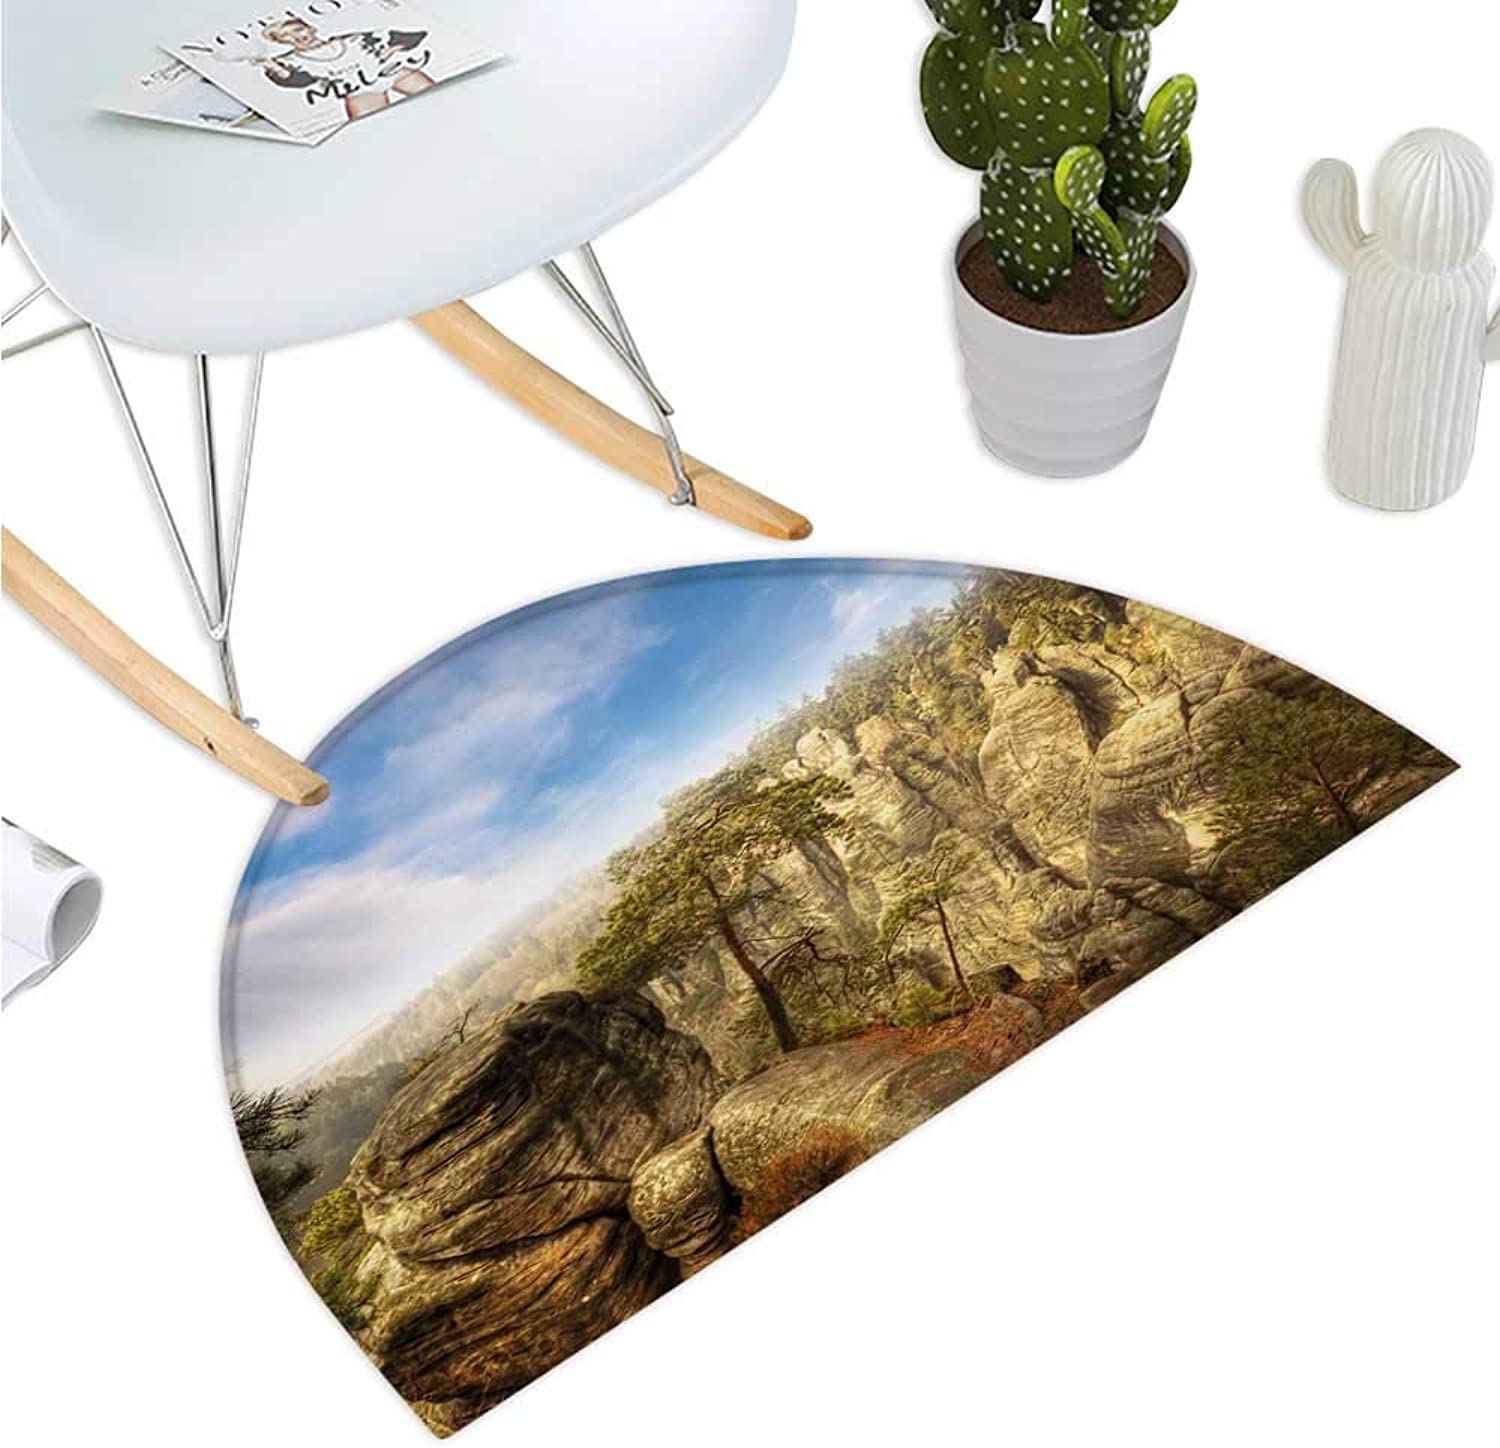 Nature Semicircular Cushion Wonders of The World National Park Rock Formation Czech Image Bathroom Mat H 39.3  xD 59  Sky bluee Tan Cream Olive Green